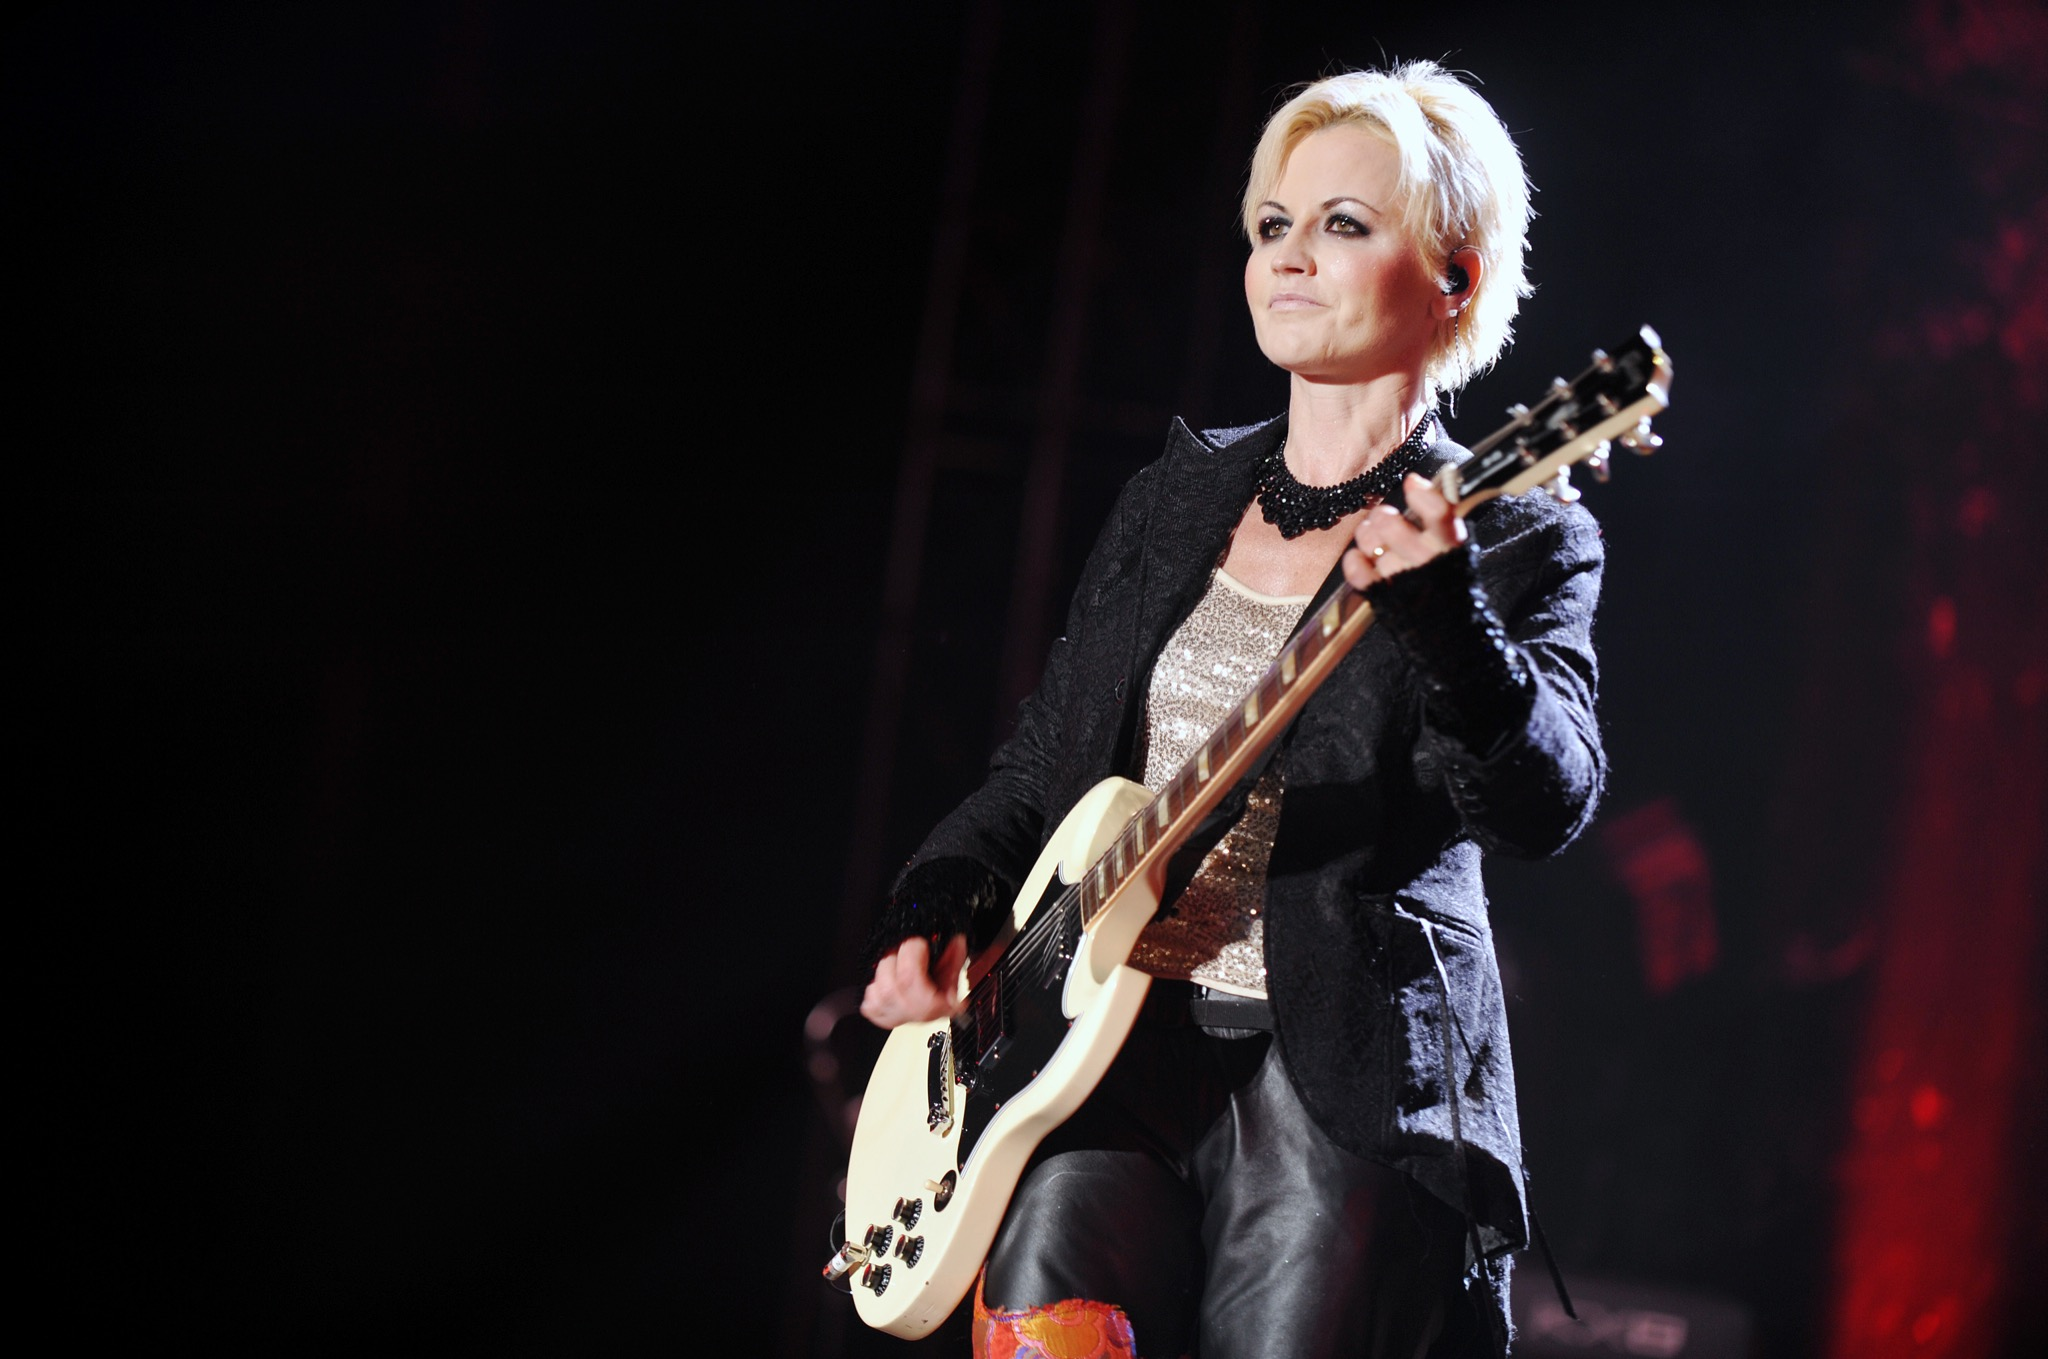 Dolores O'Riordan Dead: The Cranberries Lead Singer Cause Of Death